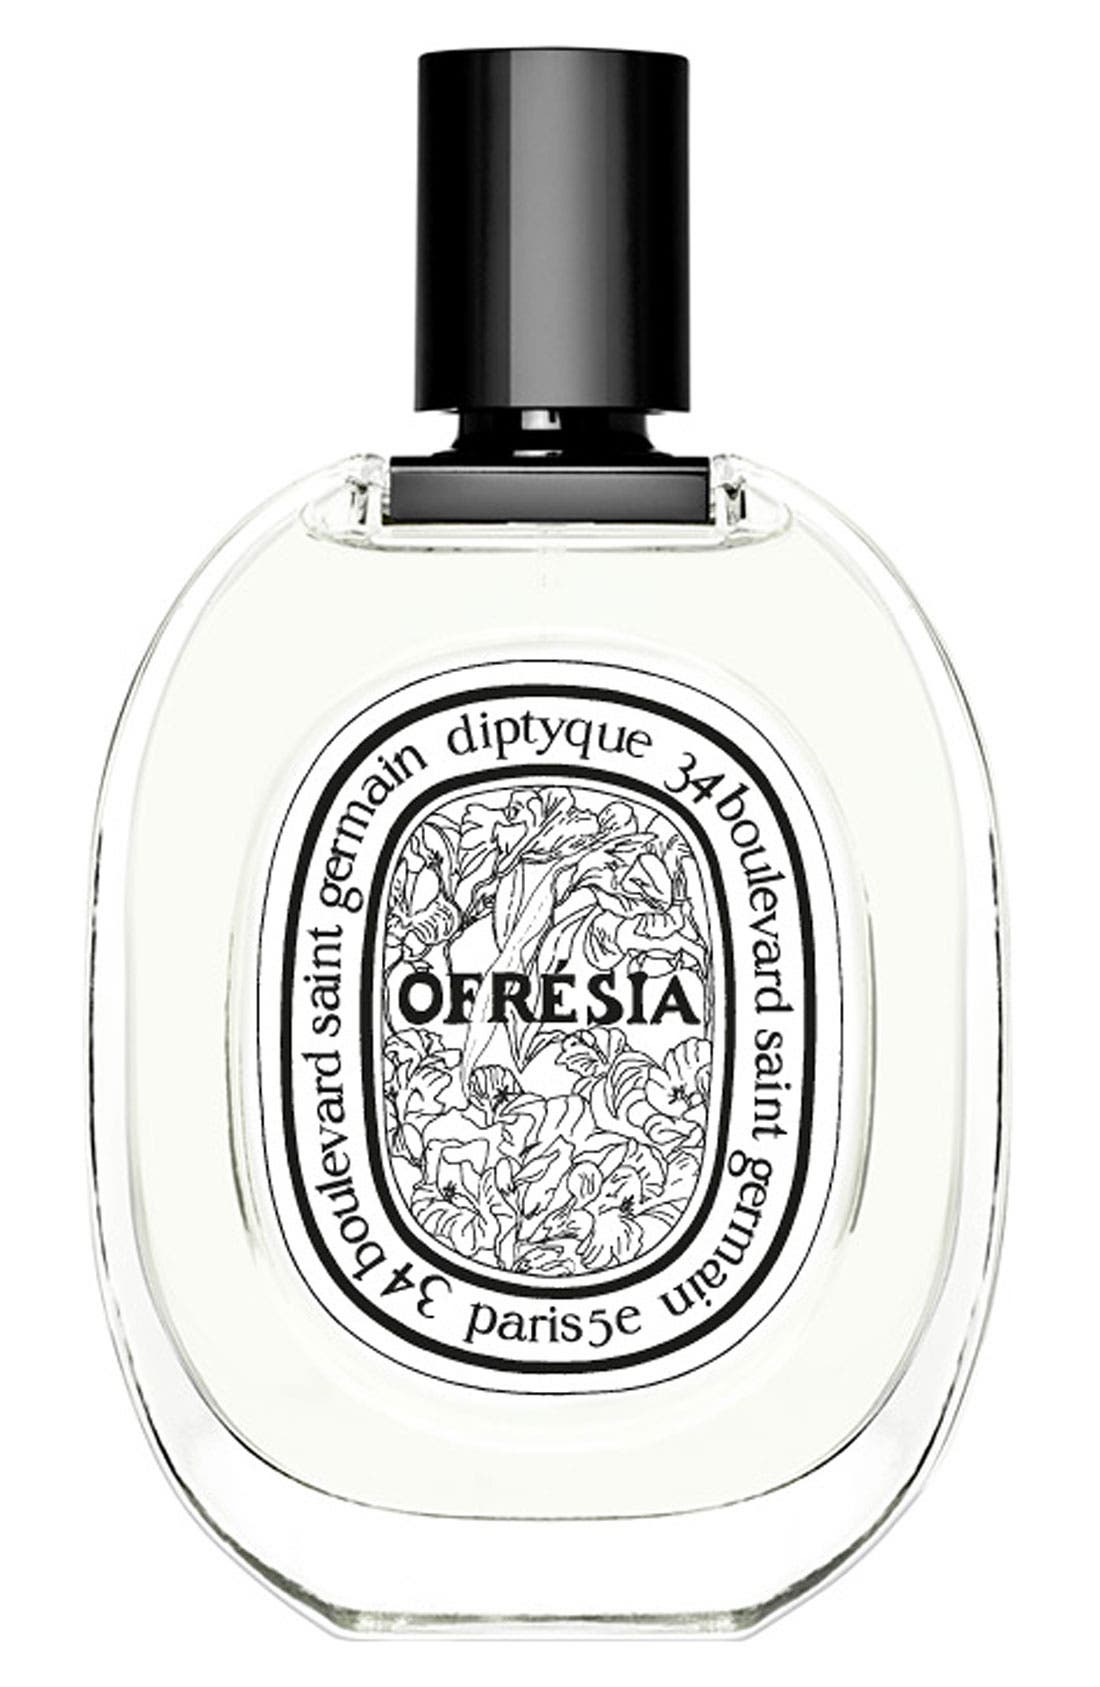 Ofrésia Eau de Toilette,                         Main,                         color, NO COLOR